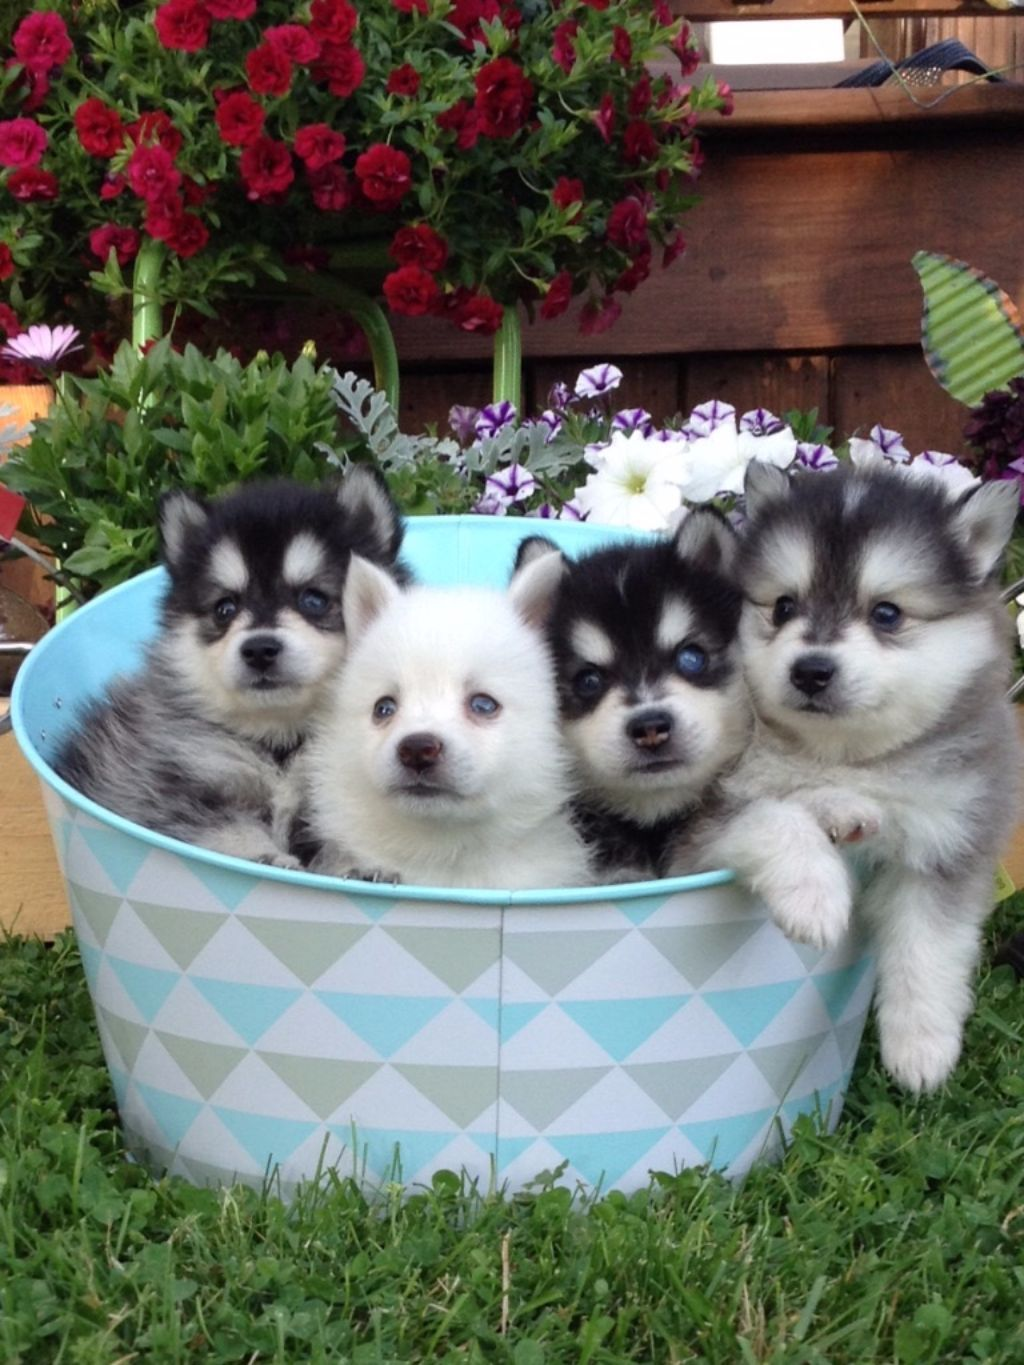 Lush Pomsky Puppies Review Wisconsin Pomsky Breeder Pomsky Puppies Cute Puppies Puppies